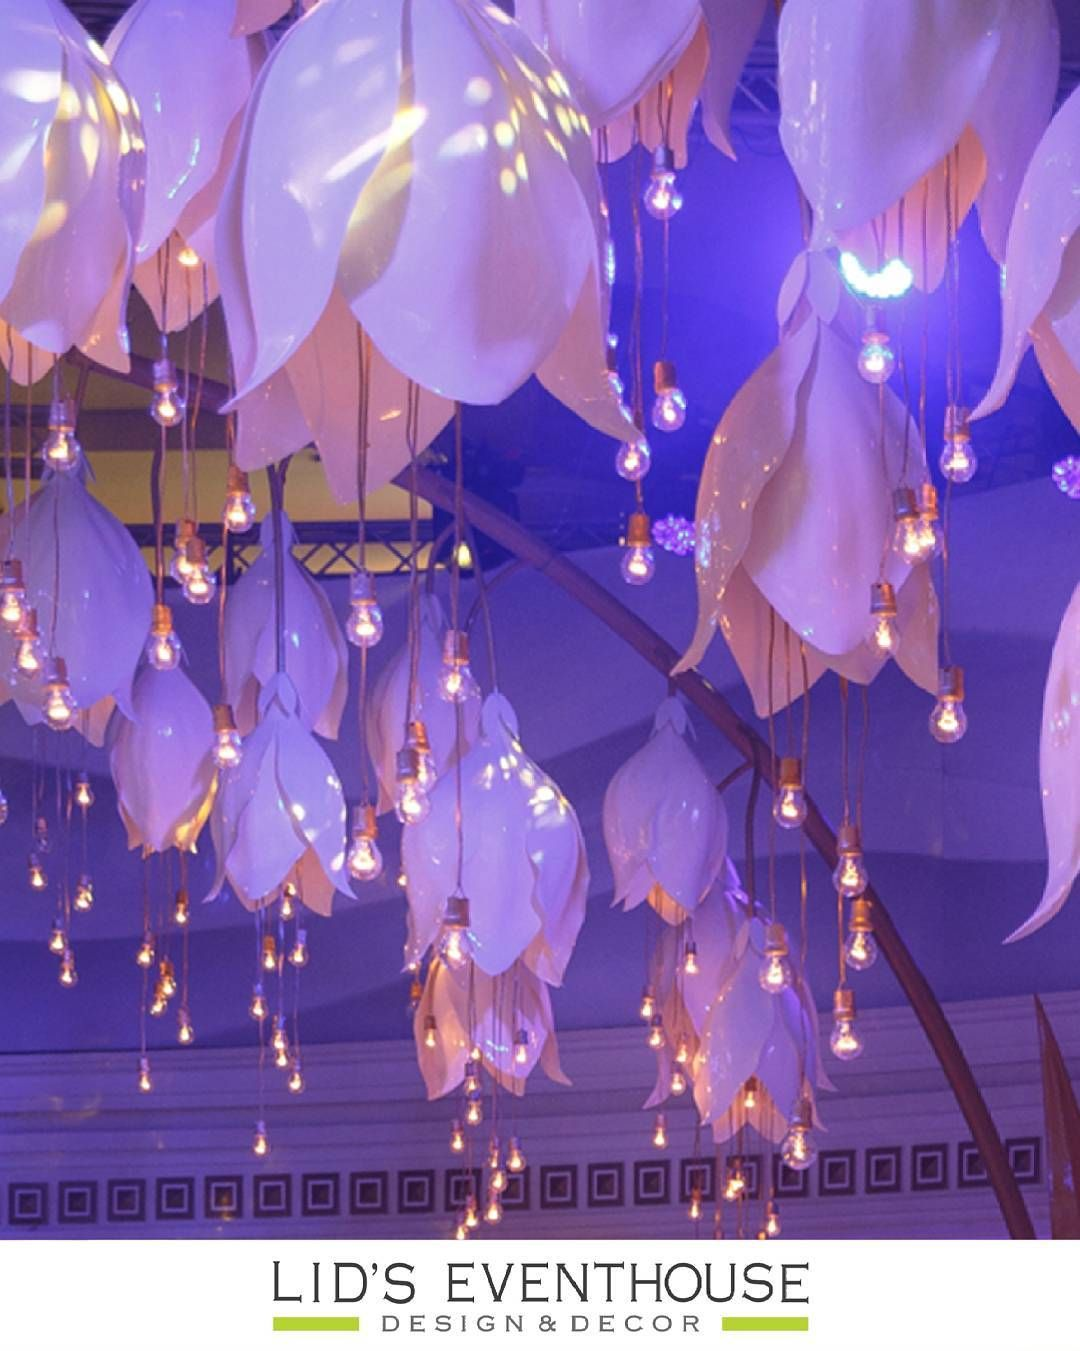 Wedding decorations using crepe paper  Smaller versions with battery operated twinkle lights  party ideas